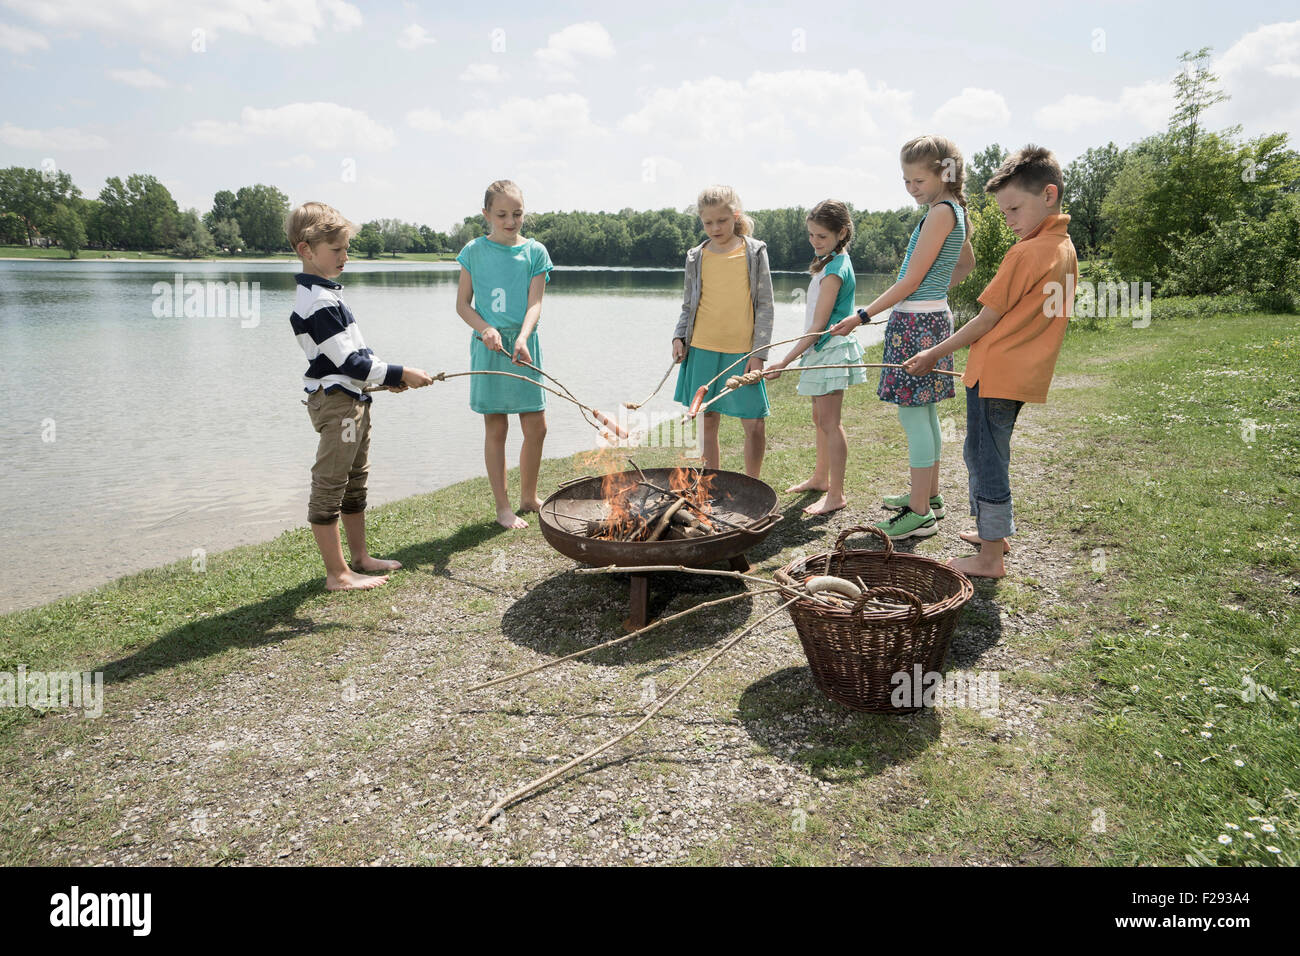 Group of friends preparing sausages on campfire, Bavaria, Germany - Stock Image